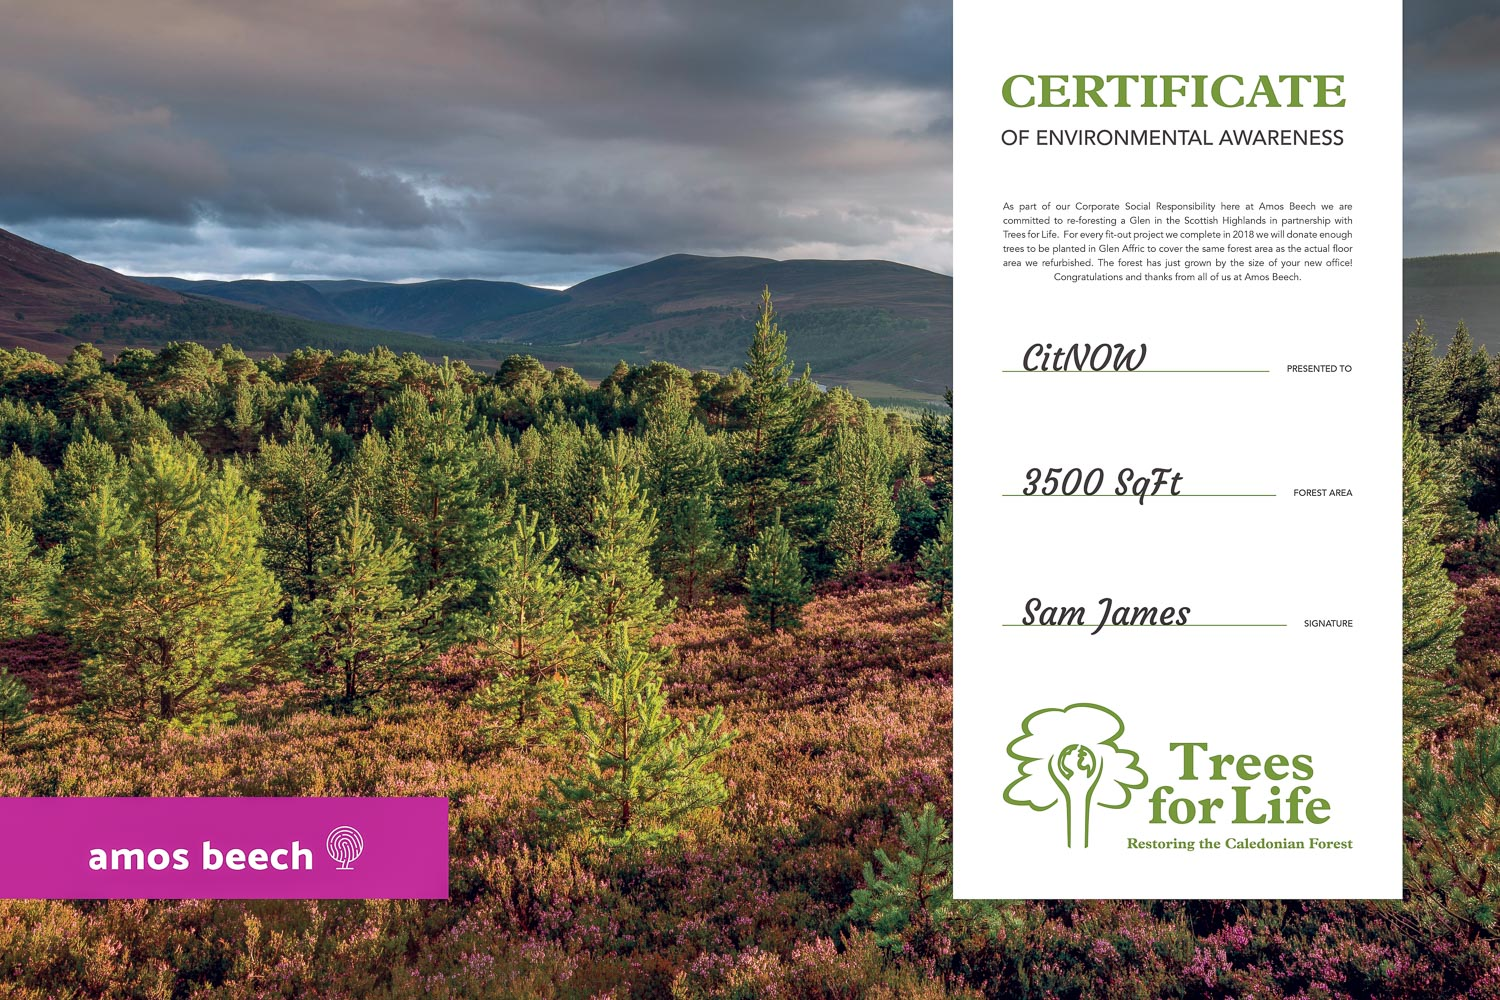 Images by Trees for Life, Graphic Design by Sinds77